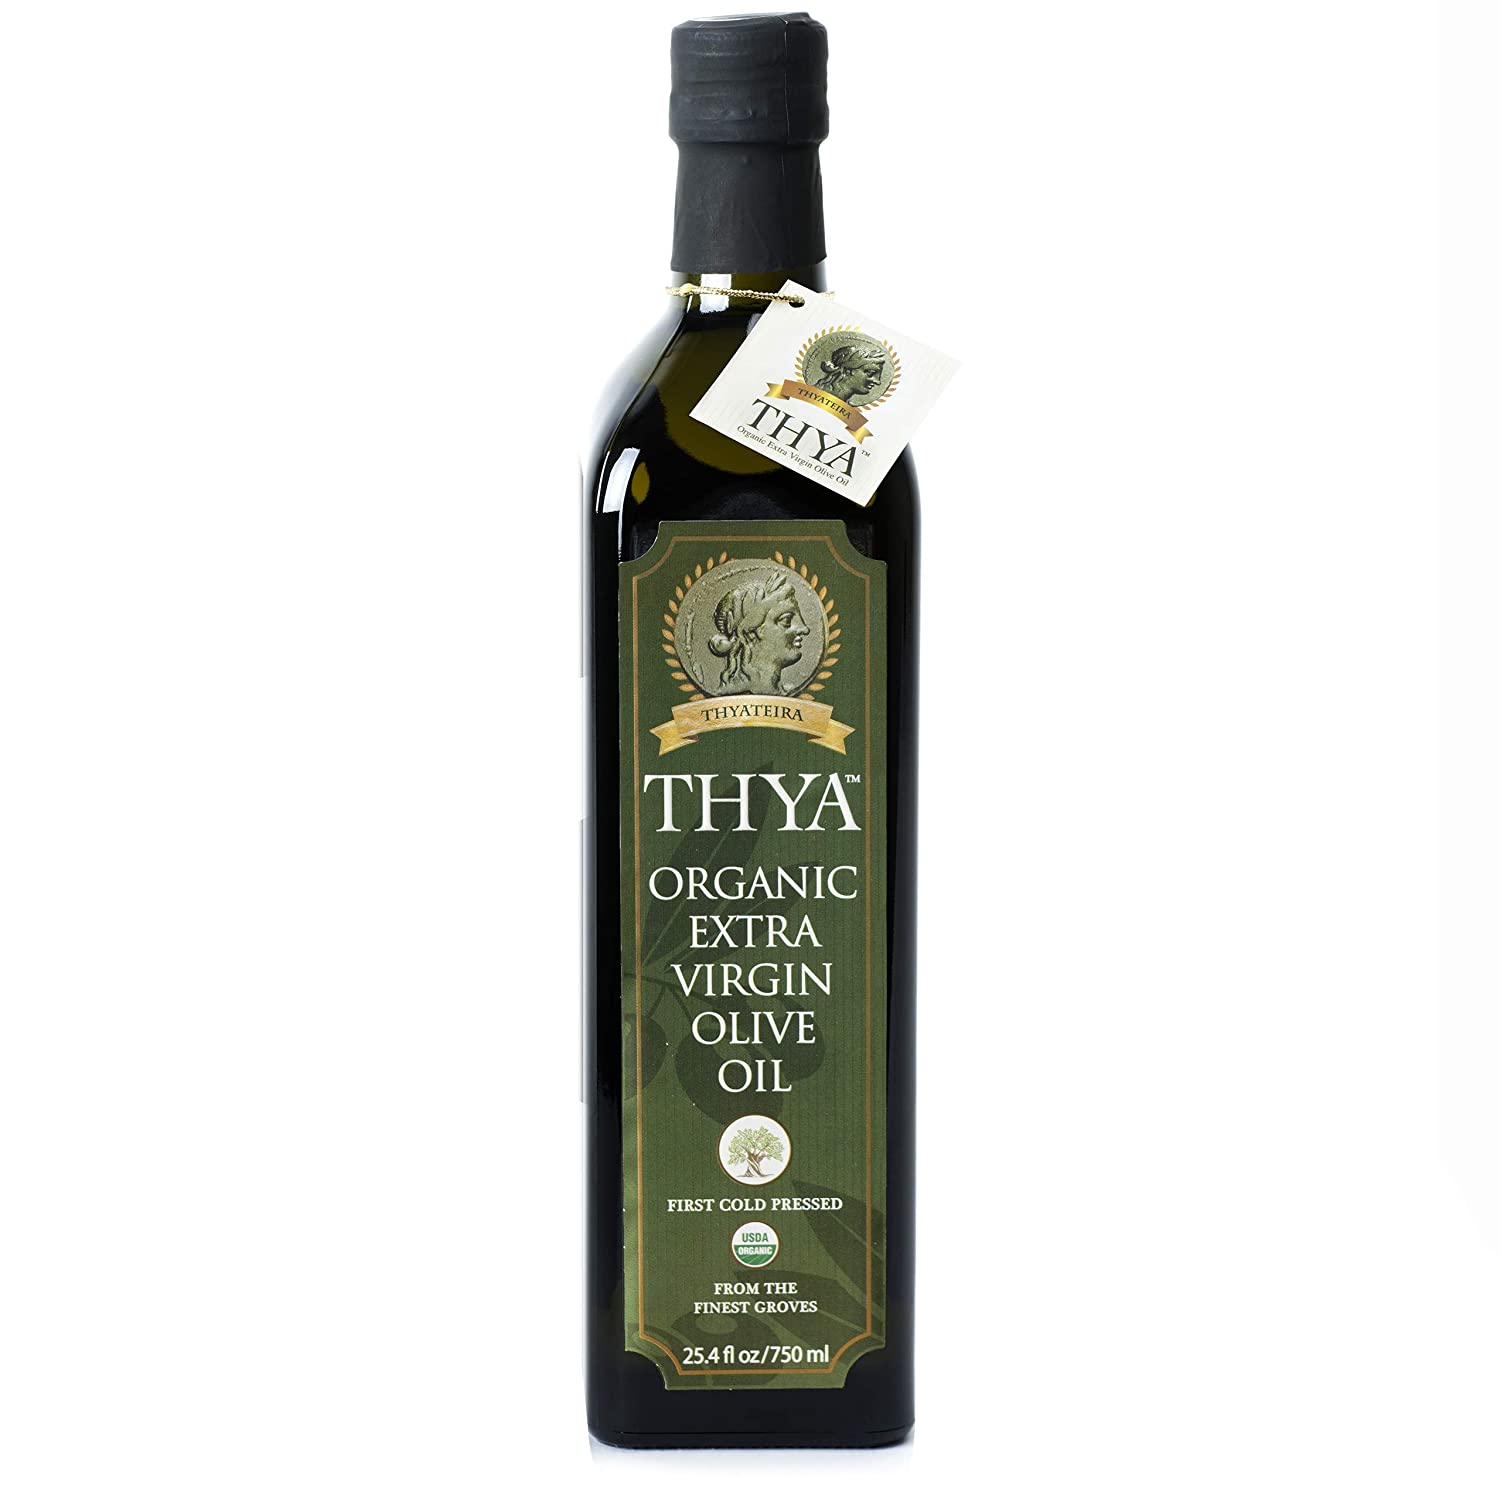 USDA Organic Extra Virgin Olive Oil by THYA, First Cold Pressed, Single Source, Unblended, Natural, NON-GMO EVOO for Salad, Cooking, Baking, Dipping, (25.4 fl oz/ 750ml)